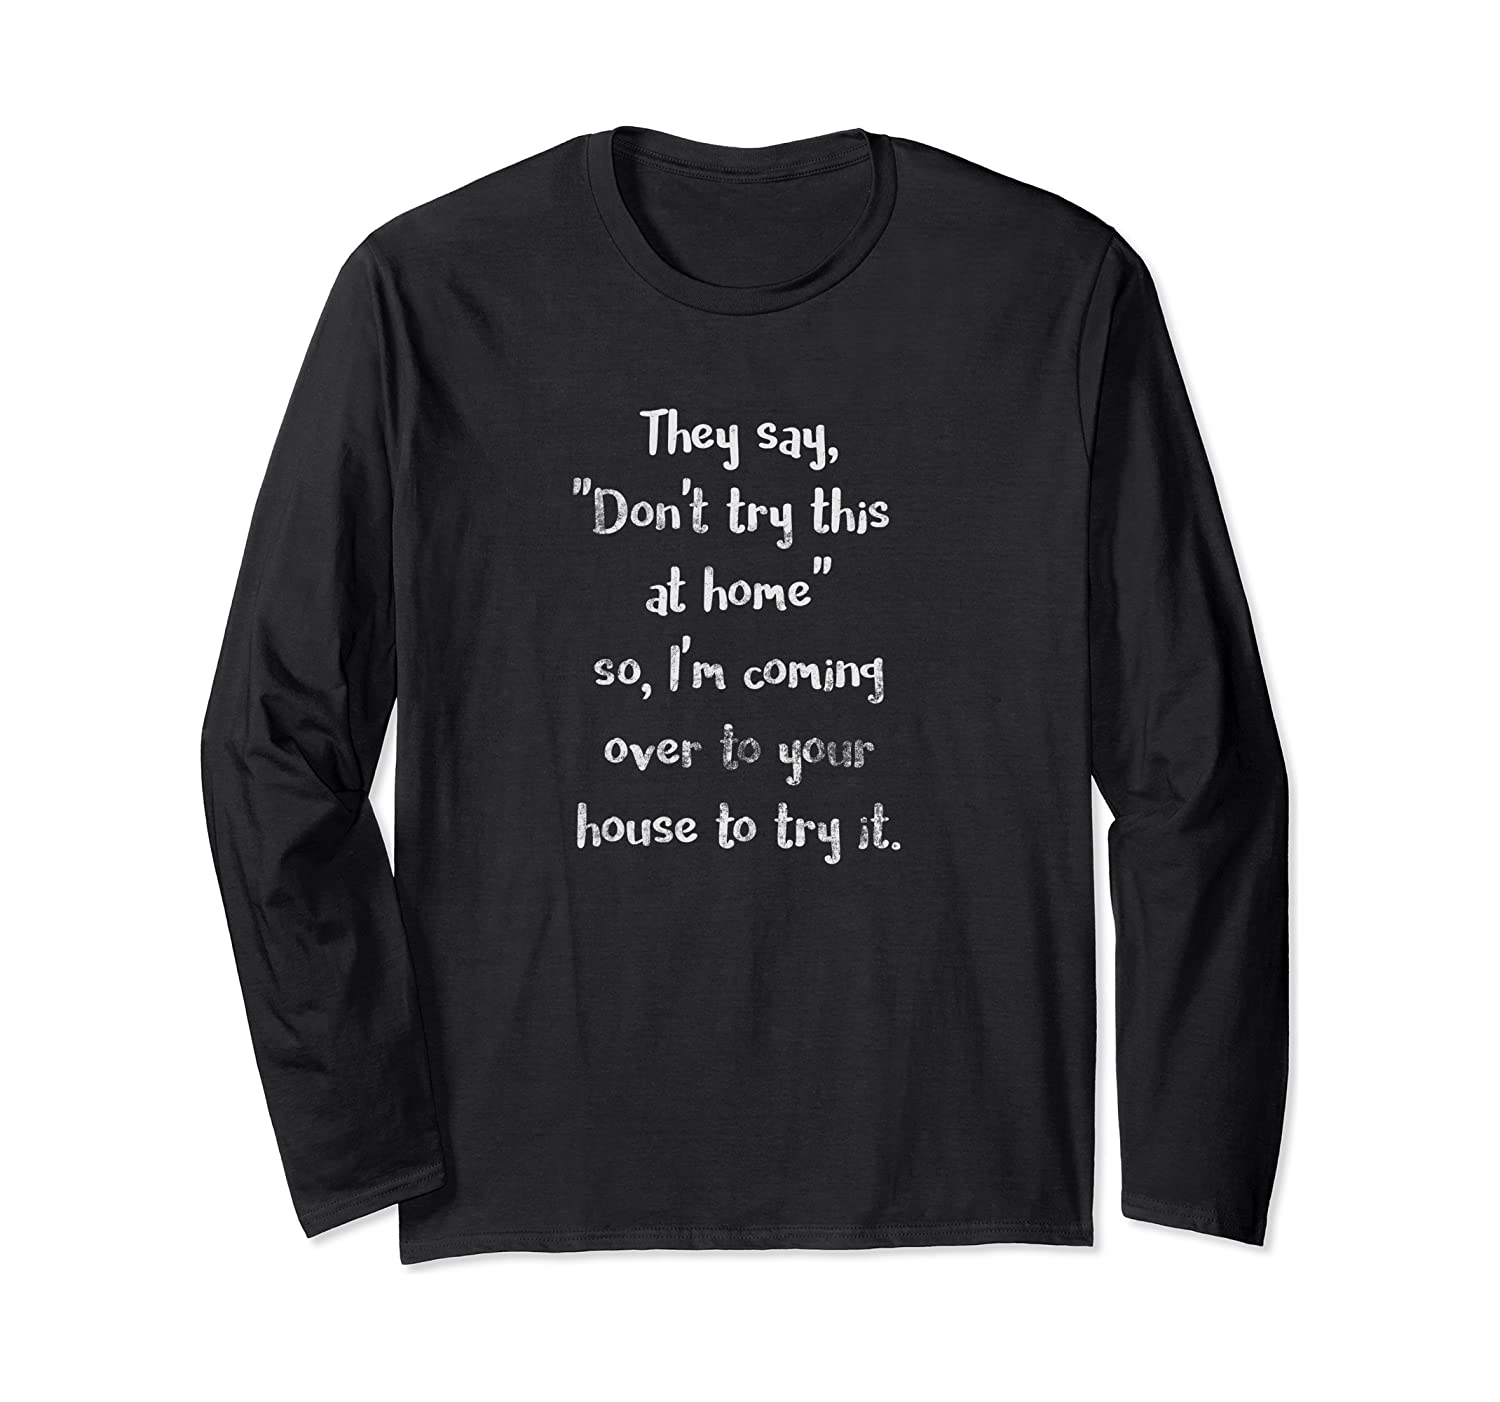 They Say Don't Try This at Home Funny Sarcastic Light Long Sleeve T-Shirt